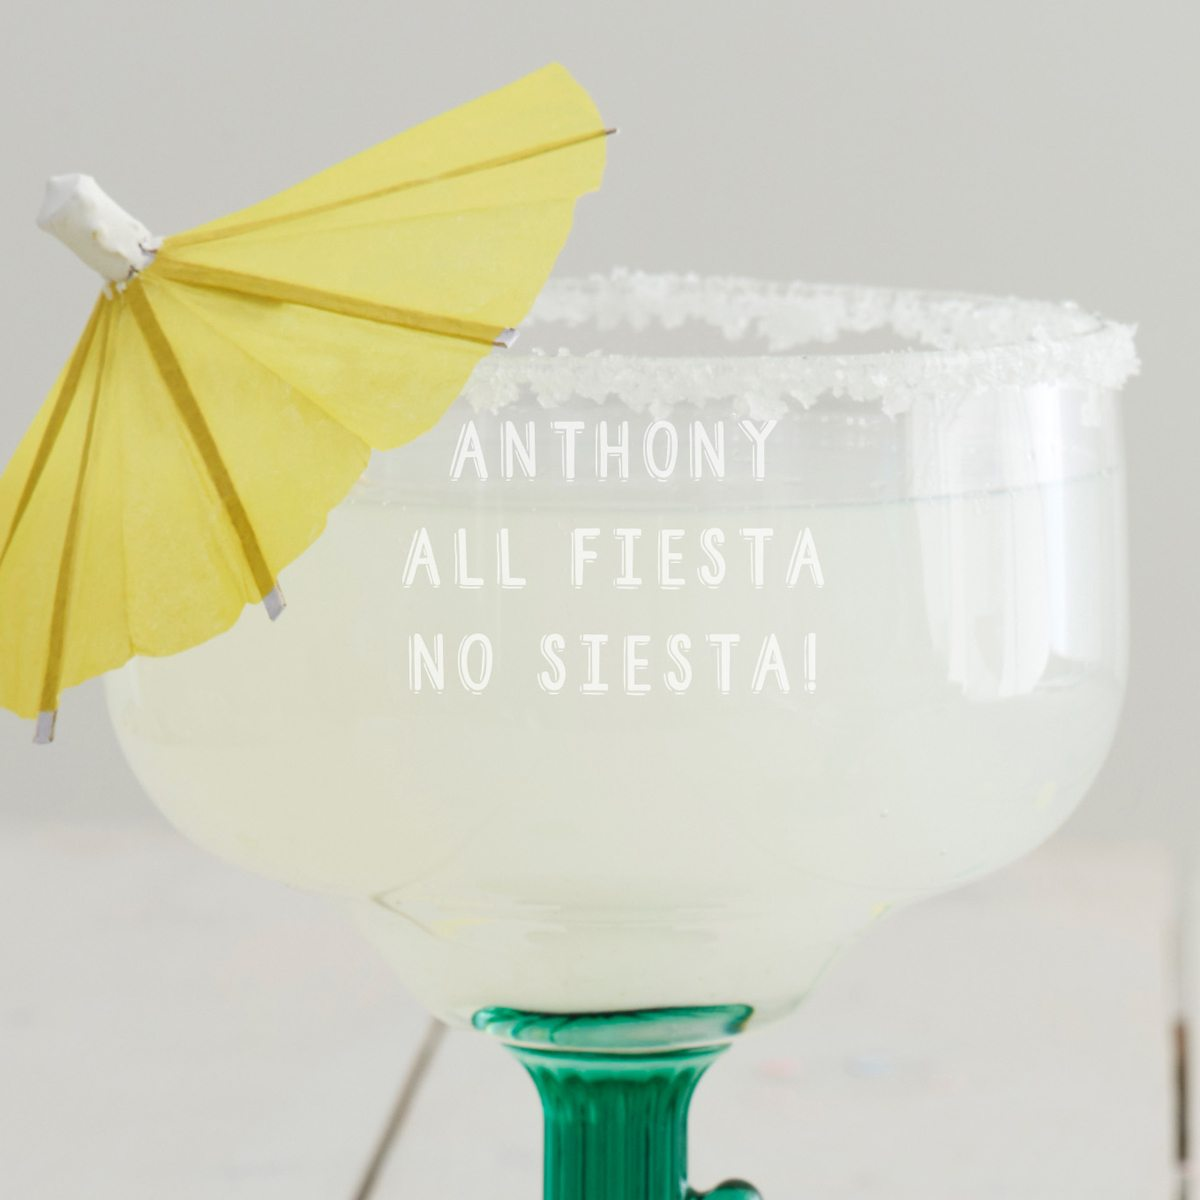 Personalised 'All Fiesta' Cactus Margarita Glass